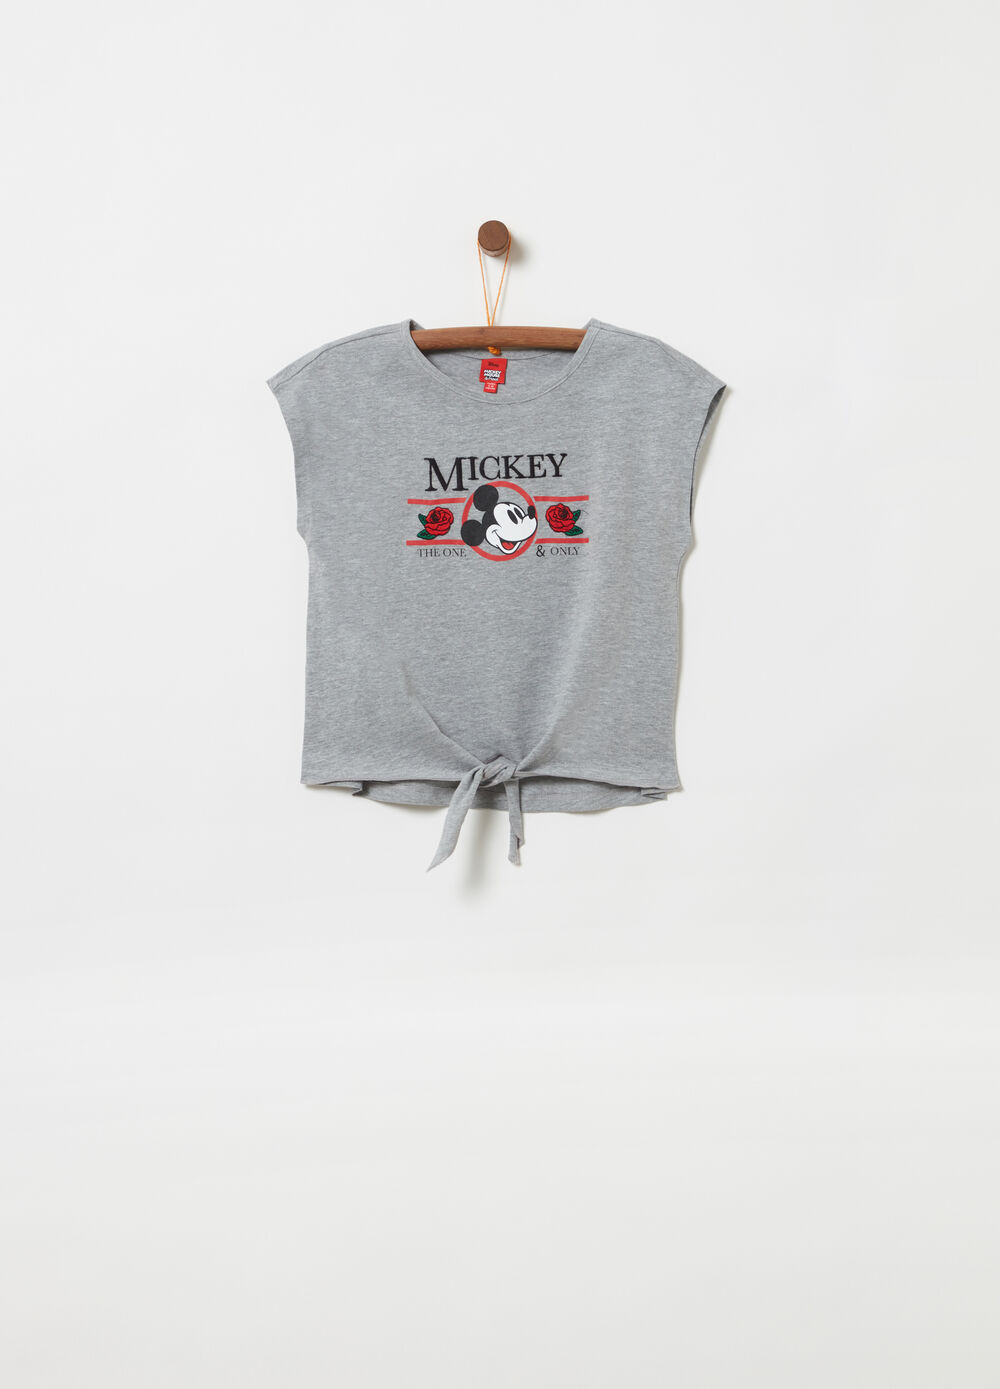 T-shirt with Disney Mickey Mouse print and embroidery